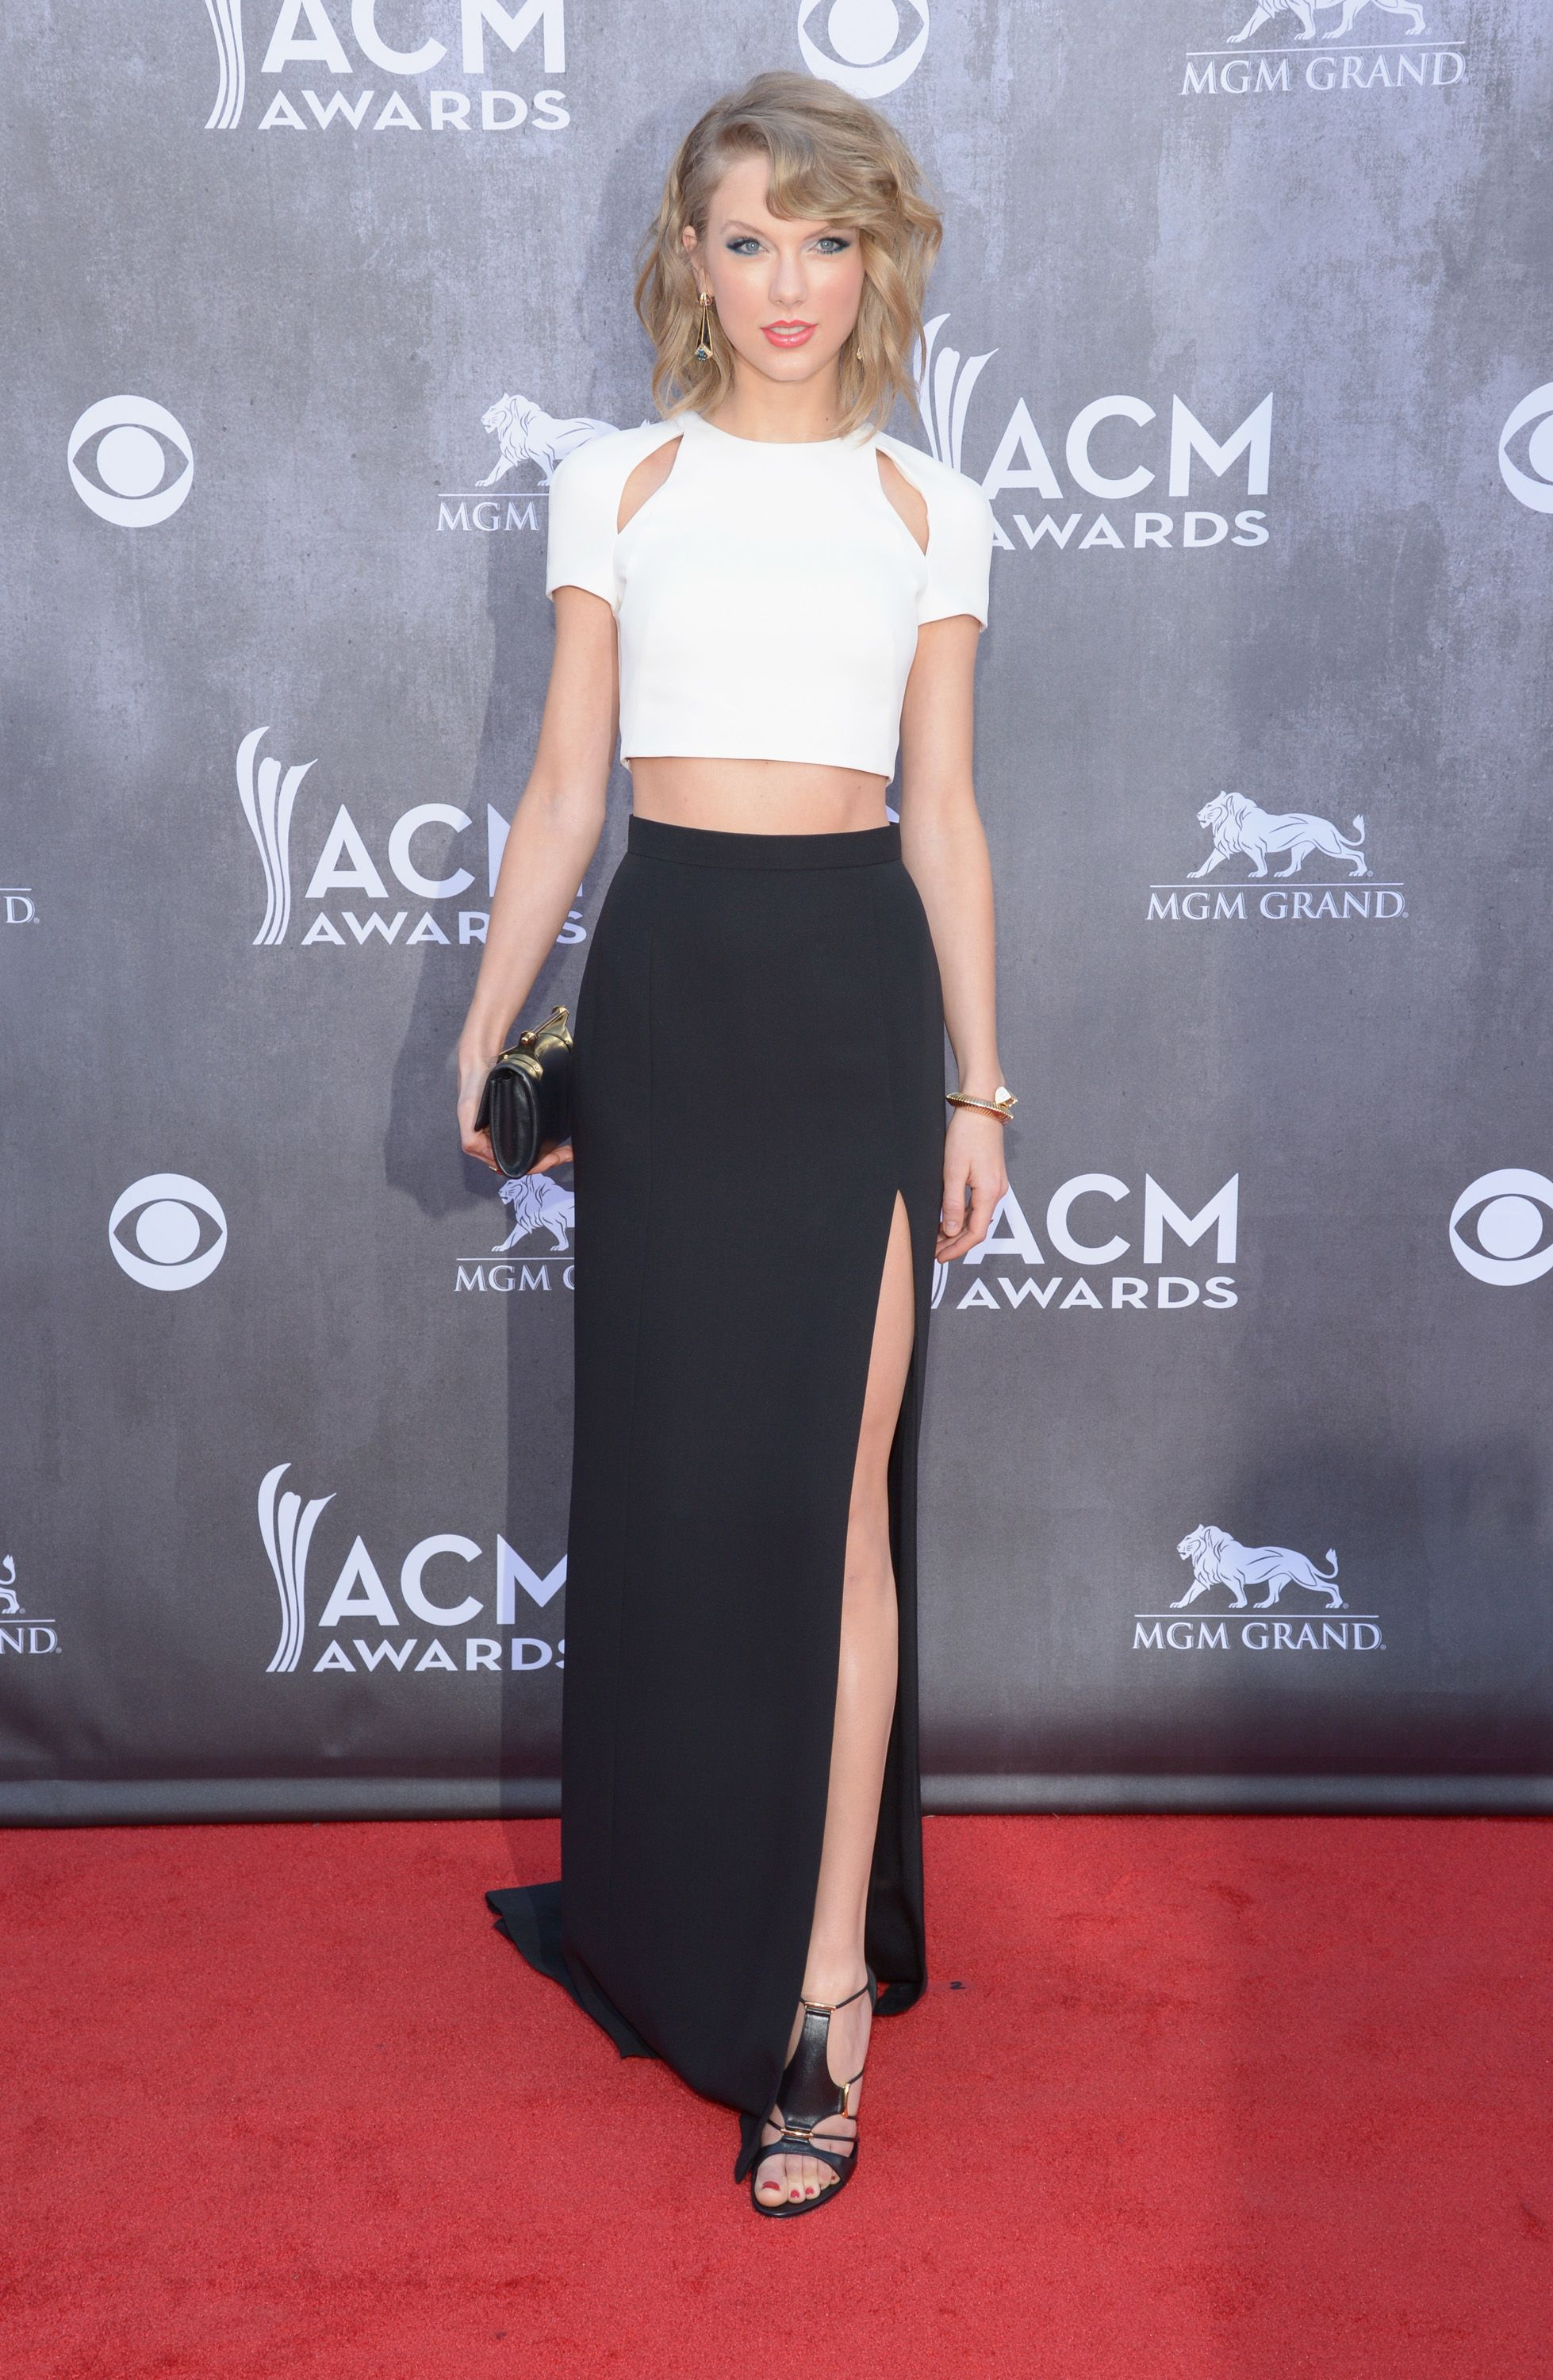 Taylor Swift wearing a custom J. Mendel Silk Crepe Ivory Top and Noir Asymmetrical Skirt to the 49th Annual Academy of Country Music Awards. www.jmendel.com